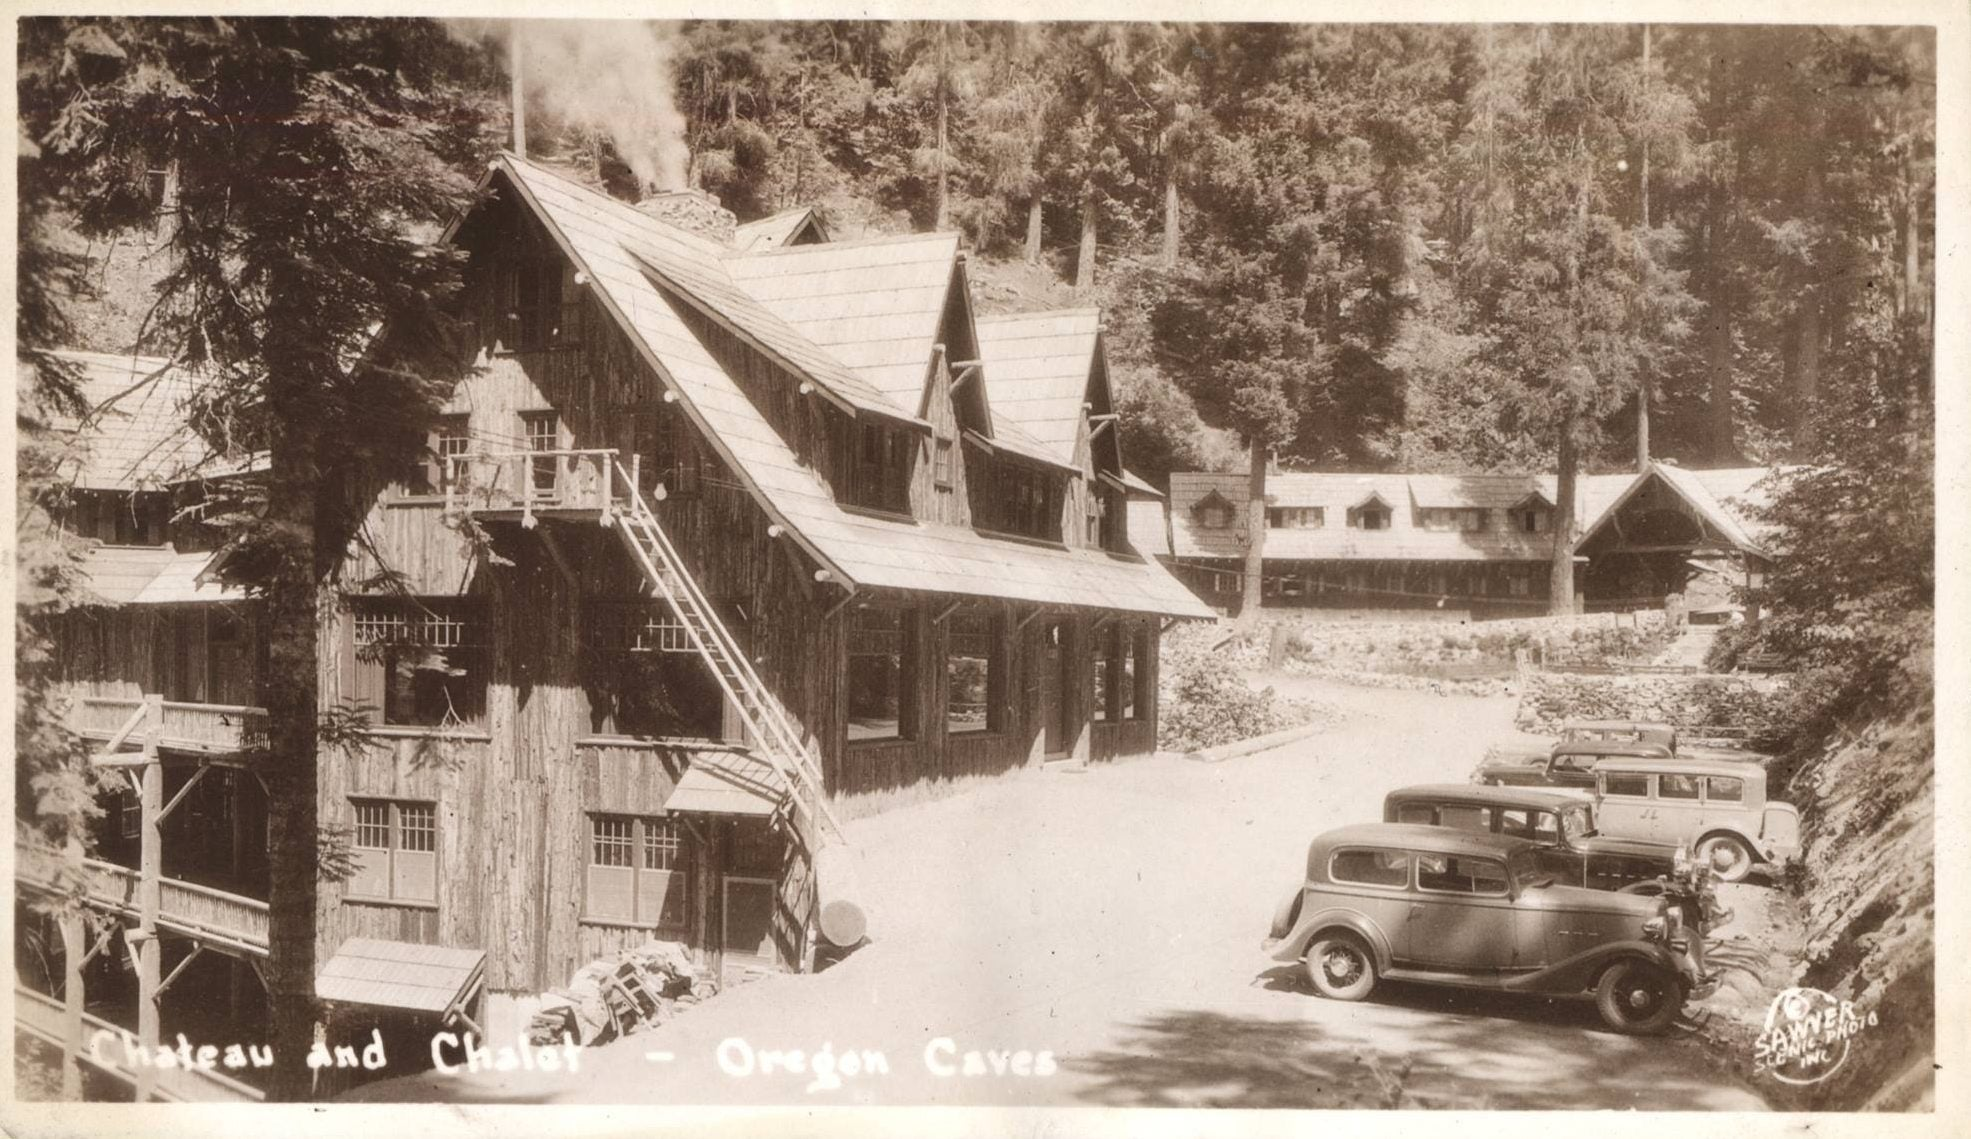 black and white photo of The Chateau at the Oregon Caves circa 1930